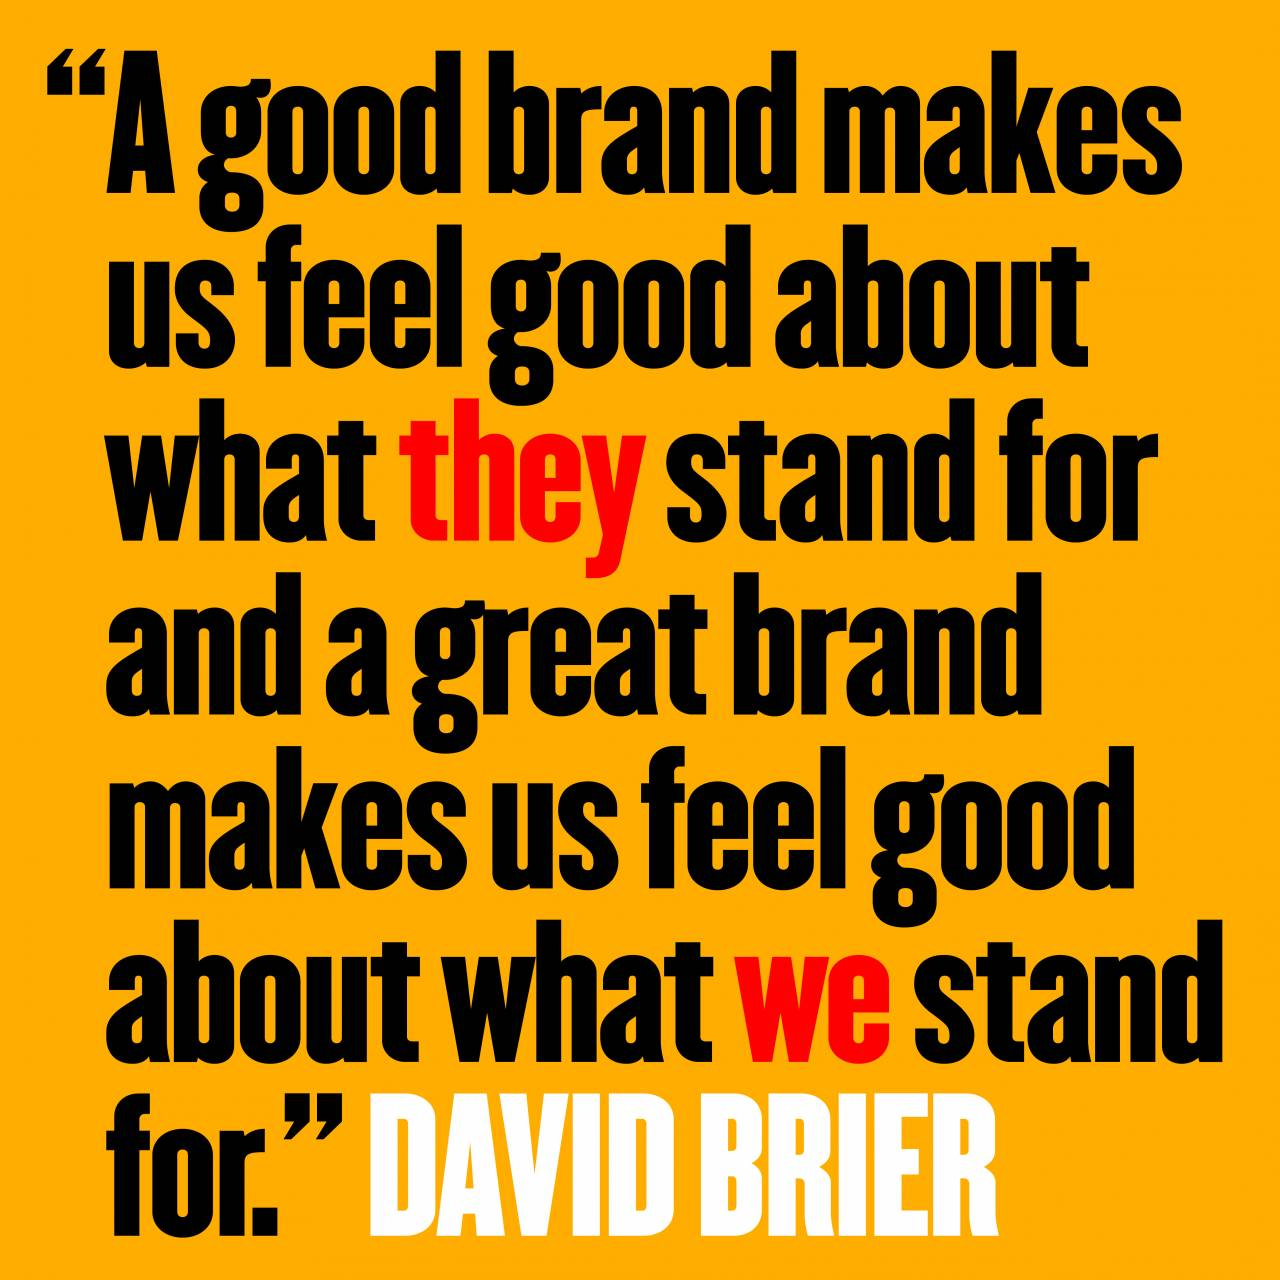 How to Wisely Choose Every Brand Quote #5